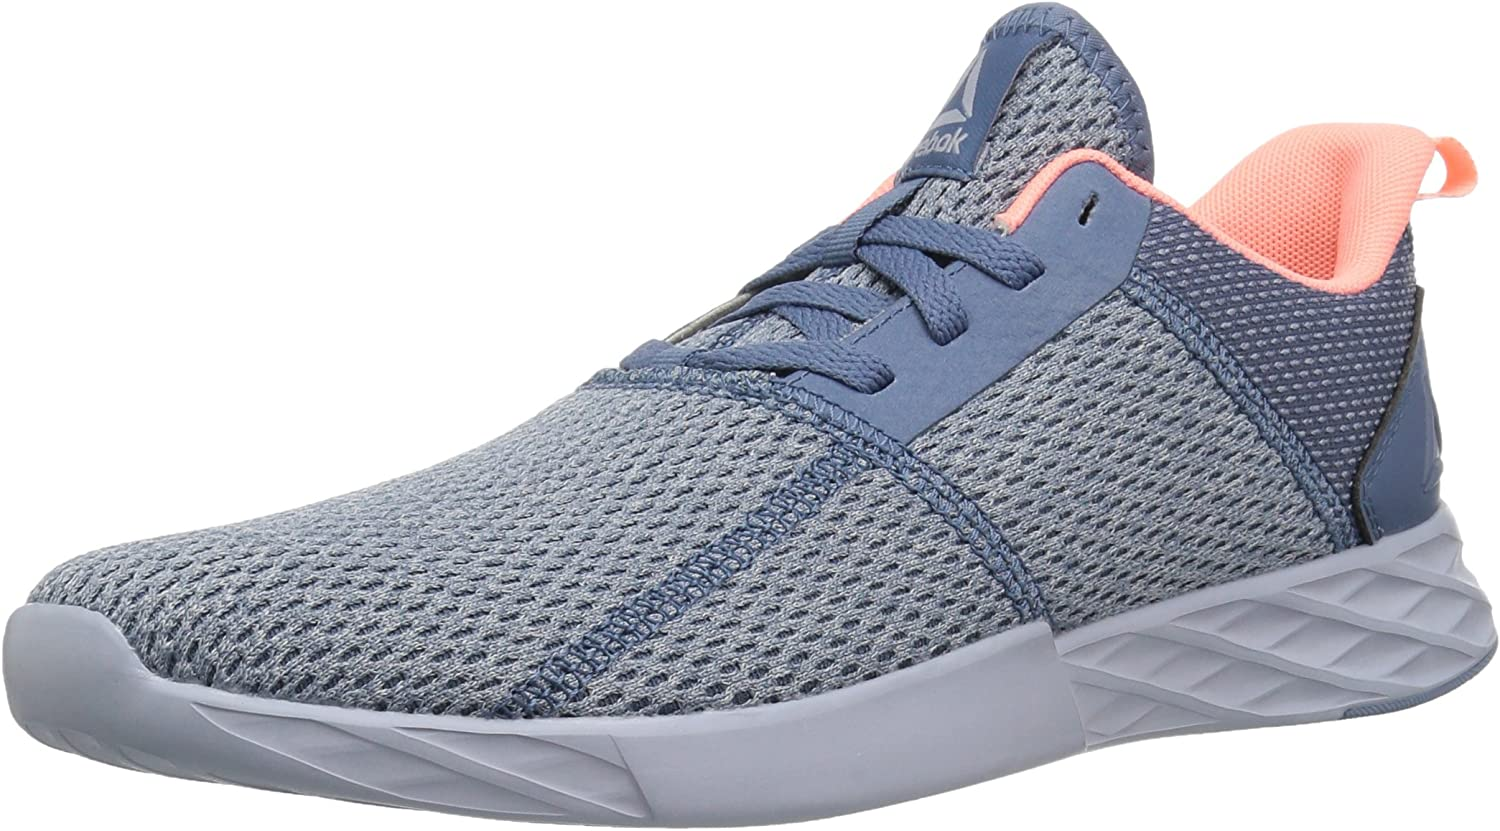 Reebok Womens Astroride Strike Running shoes